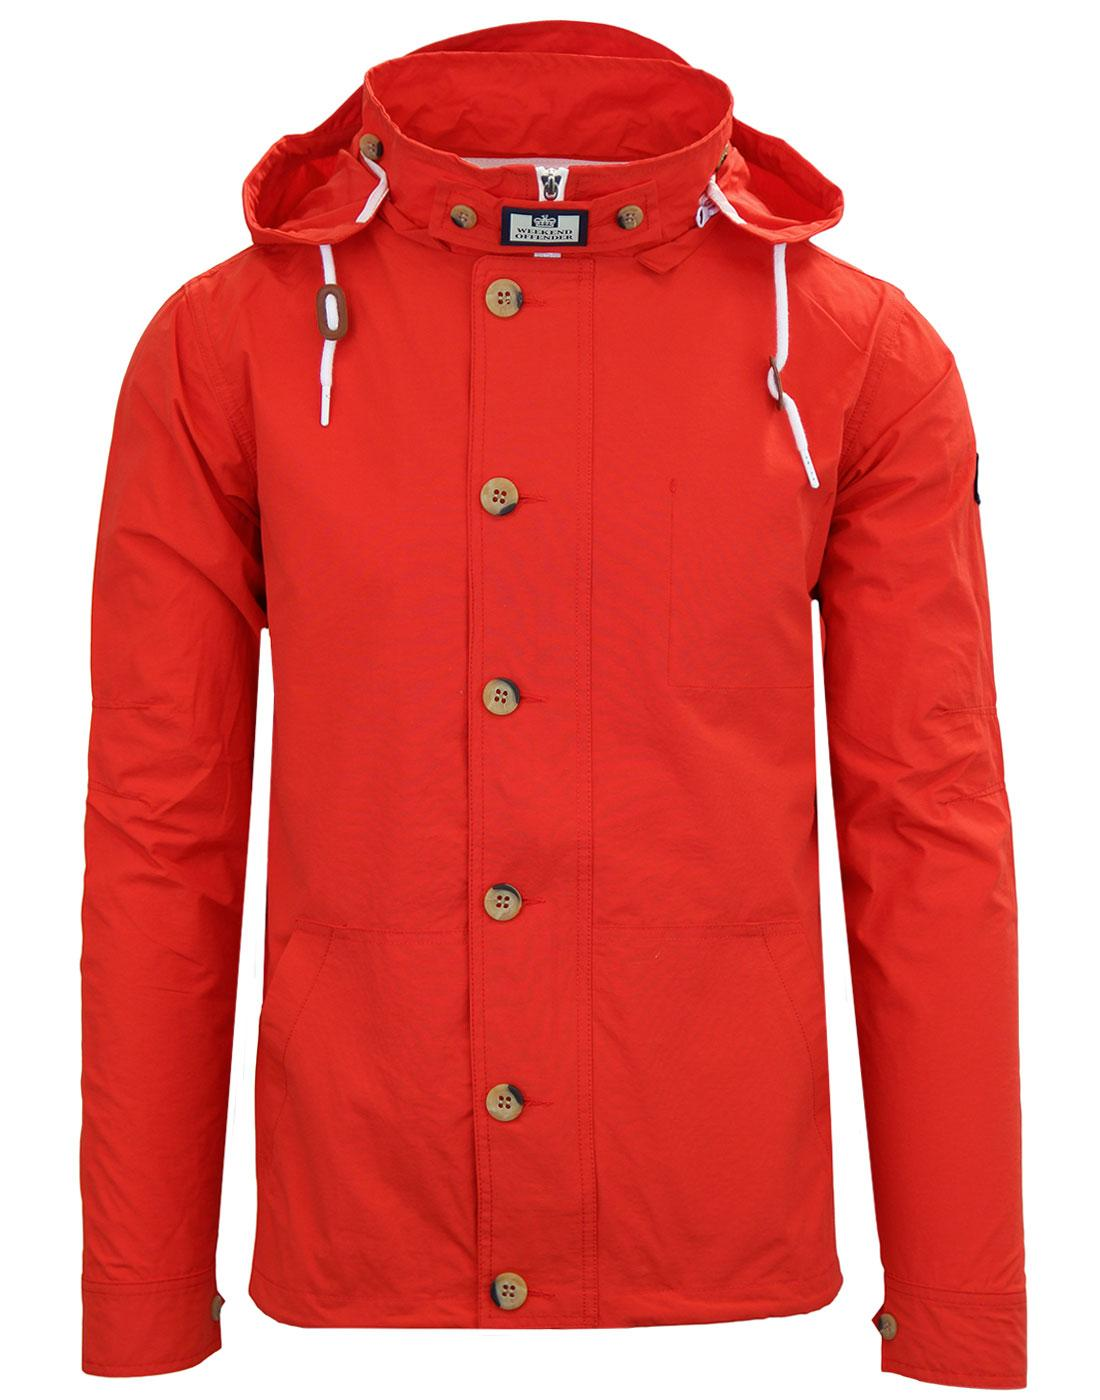 Burgess WEEKEND OFFENDER Retro Hooded Jacket MARS